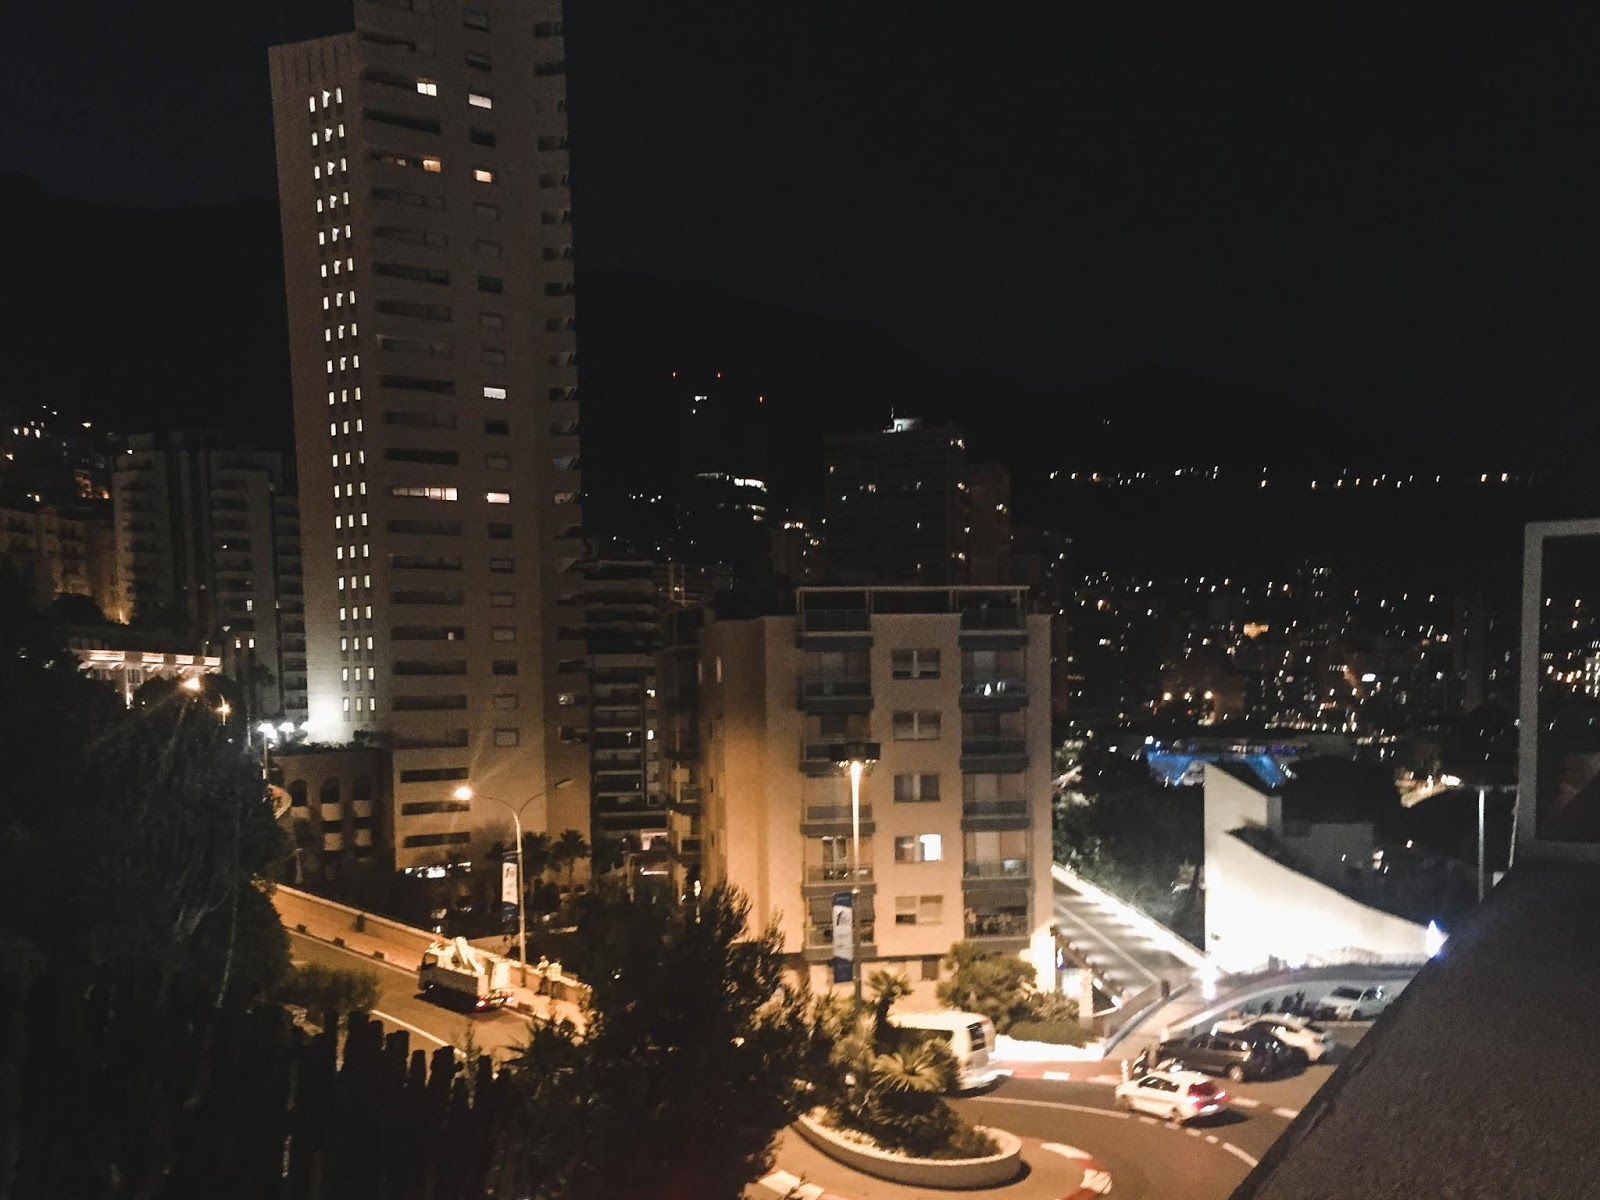 A Night in Monaco